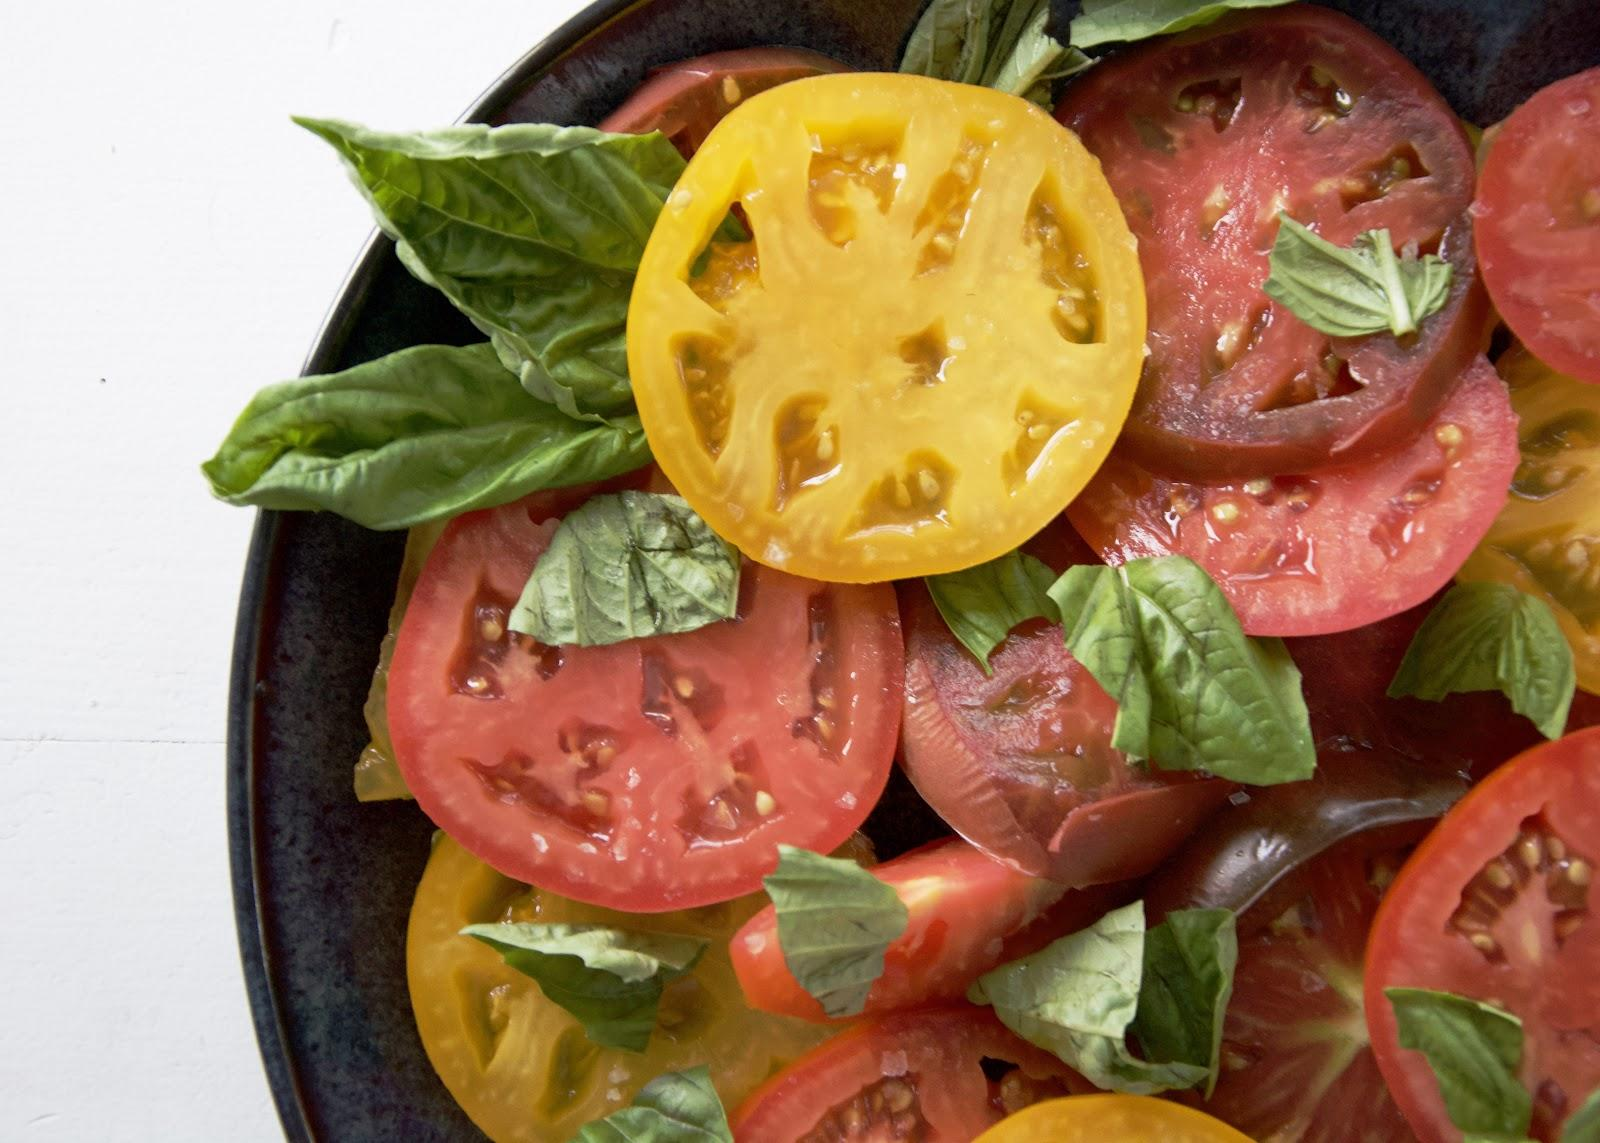 A holistic approach to nutrition can can be as simple as a plate of these beautiful tomatoes.